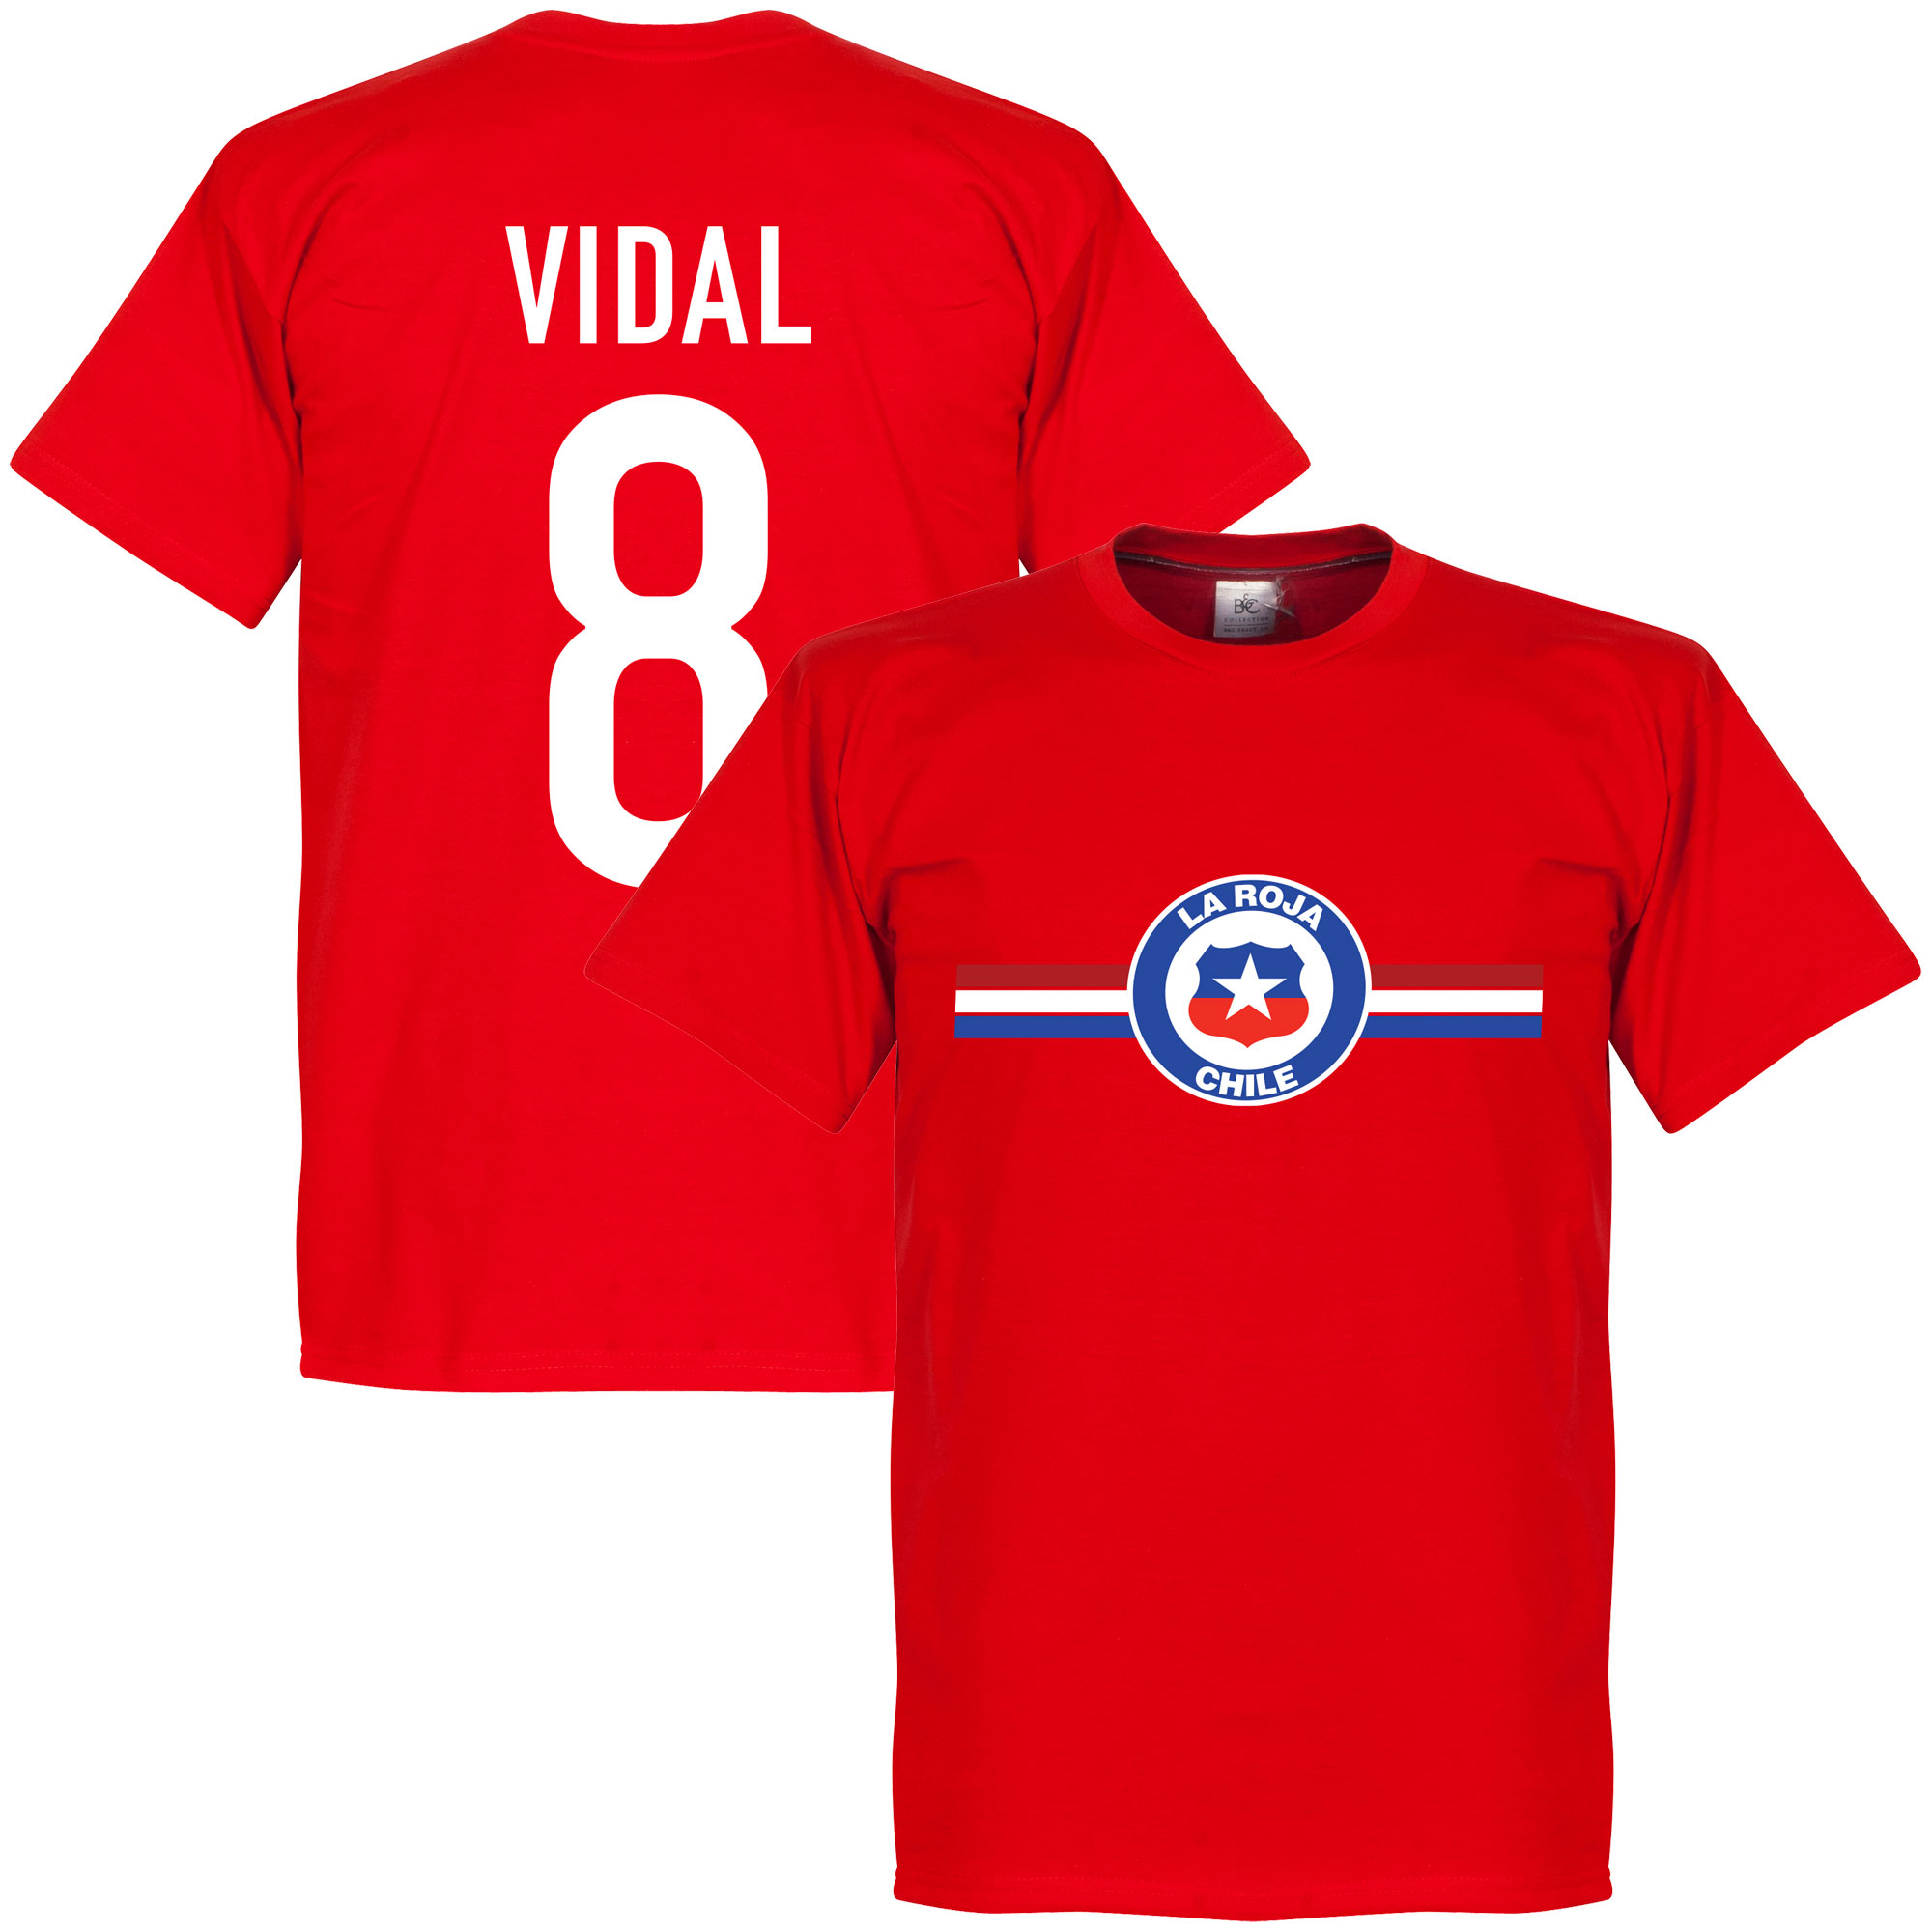 Chile Vidal Tee - Red - XXL